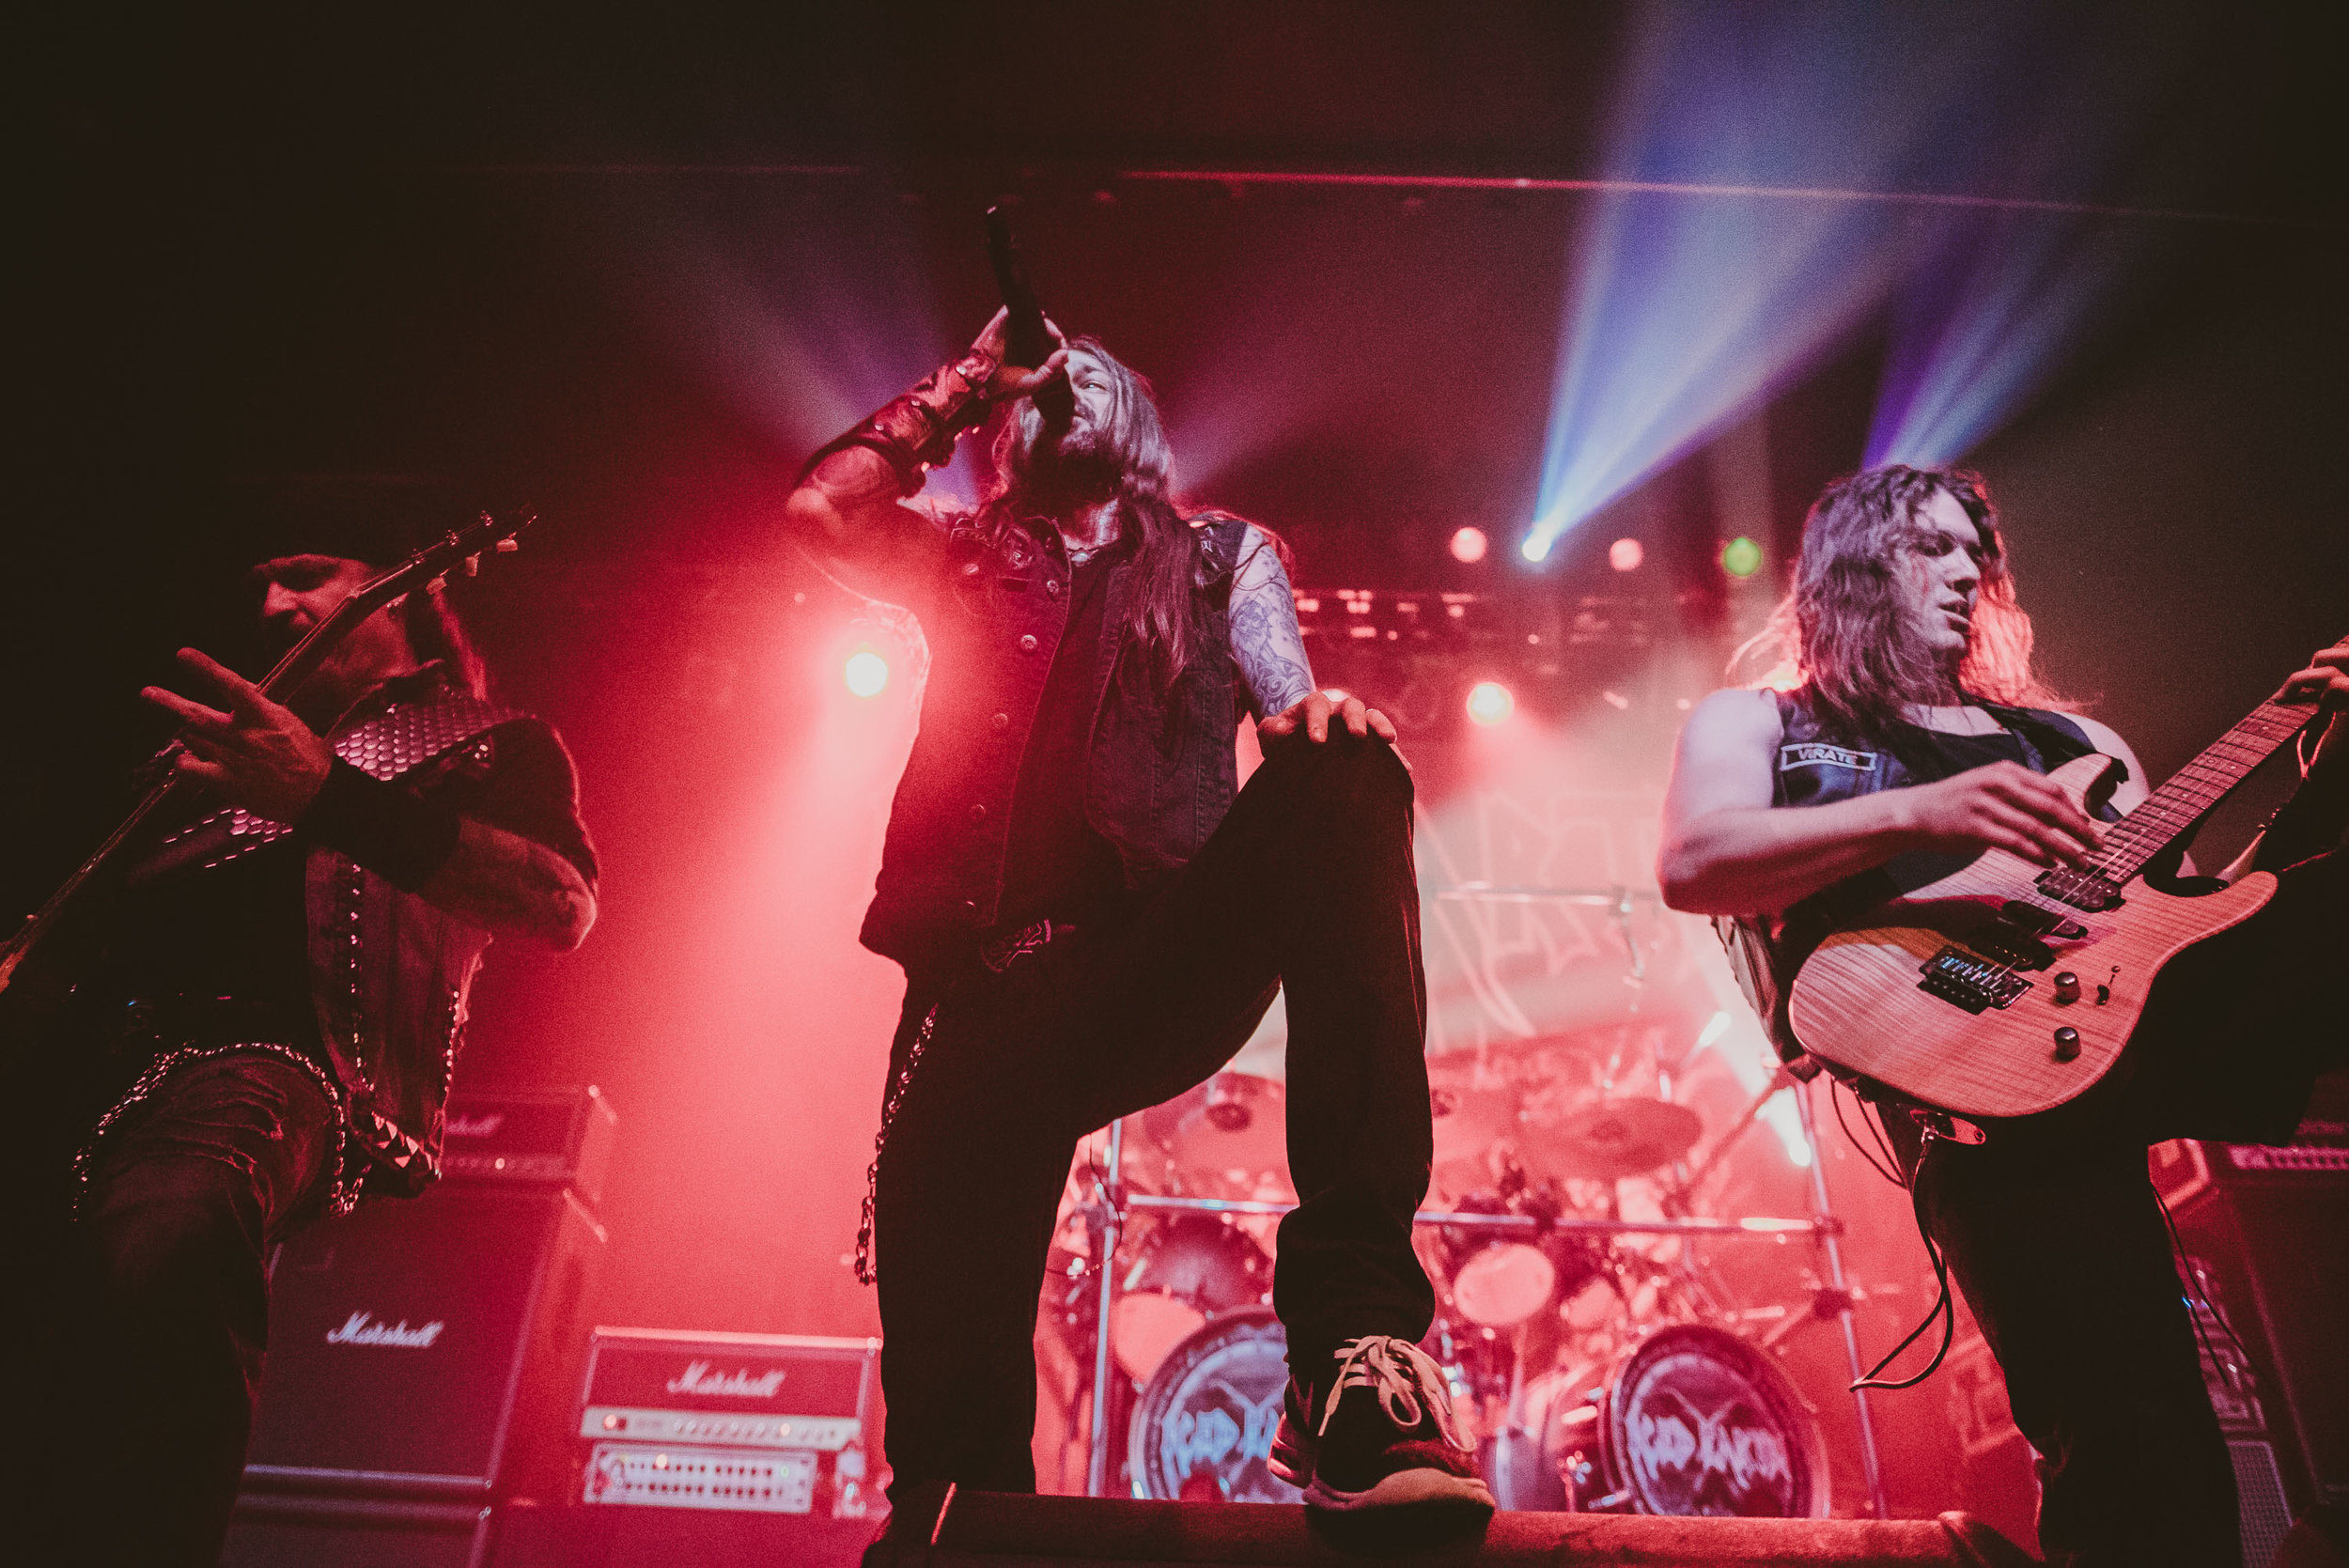 1_Iced_Earth-Rickshaw_Theatre-Timothy_Nguyen-20180304 (20 of 20).jpg